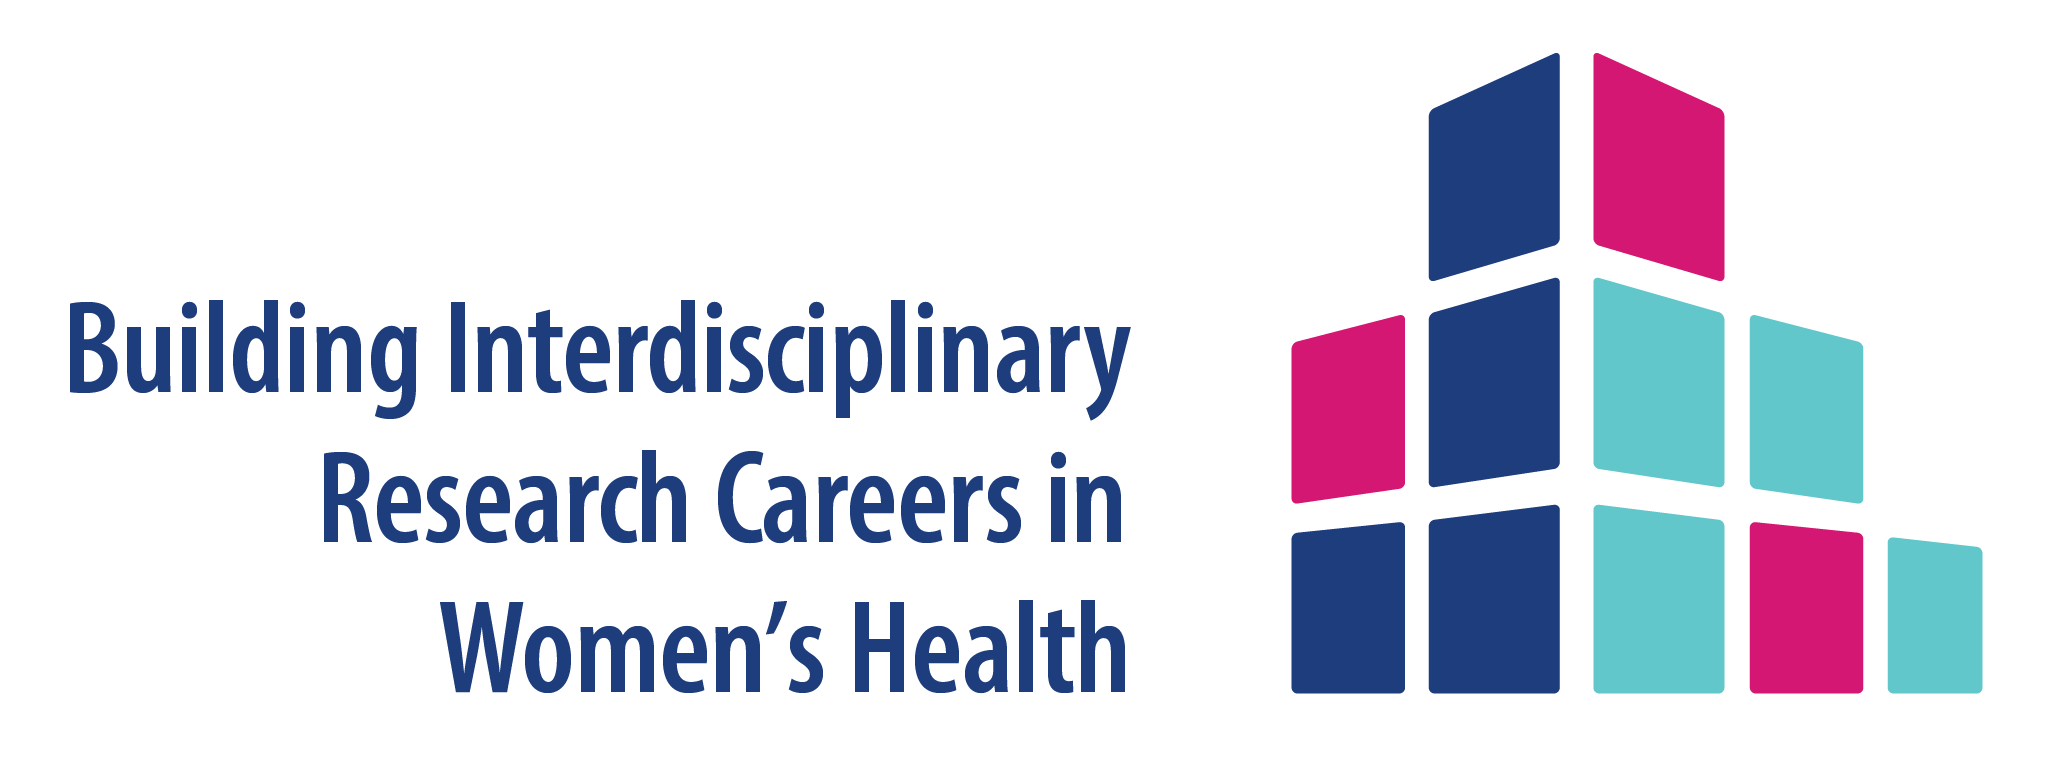 Building Interdisciplinary Research Careers in Women's Health